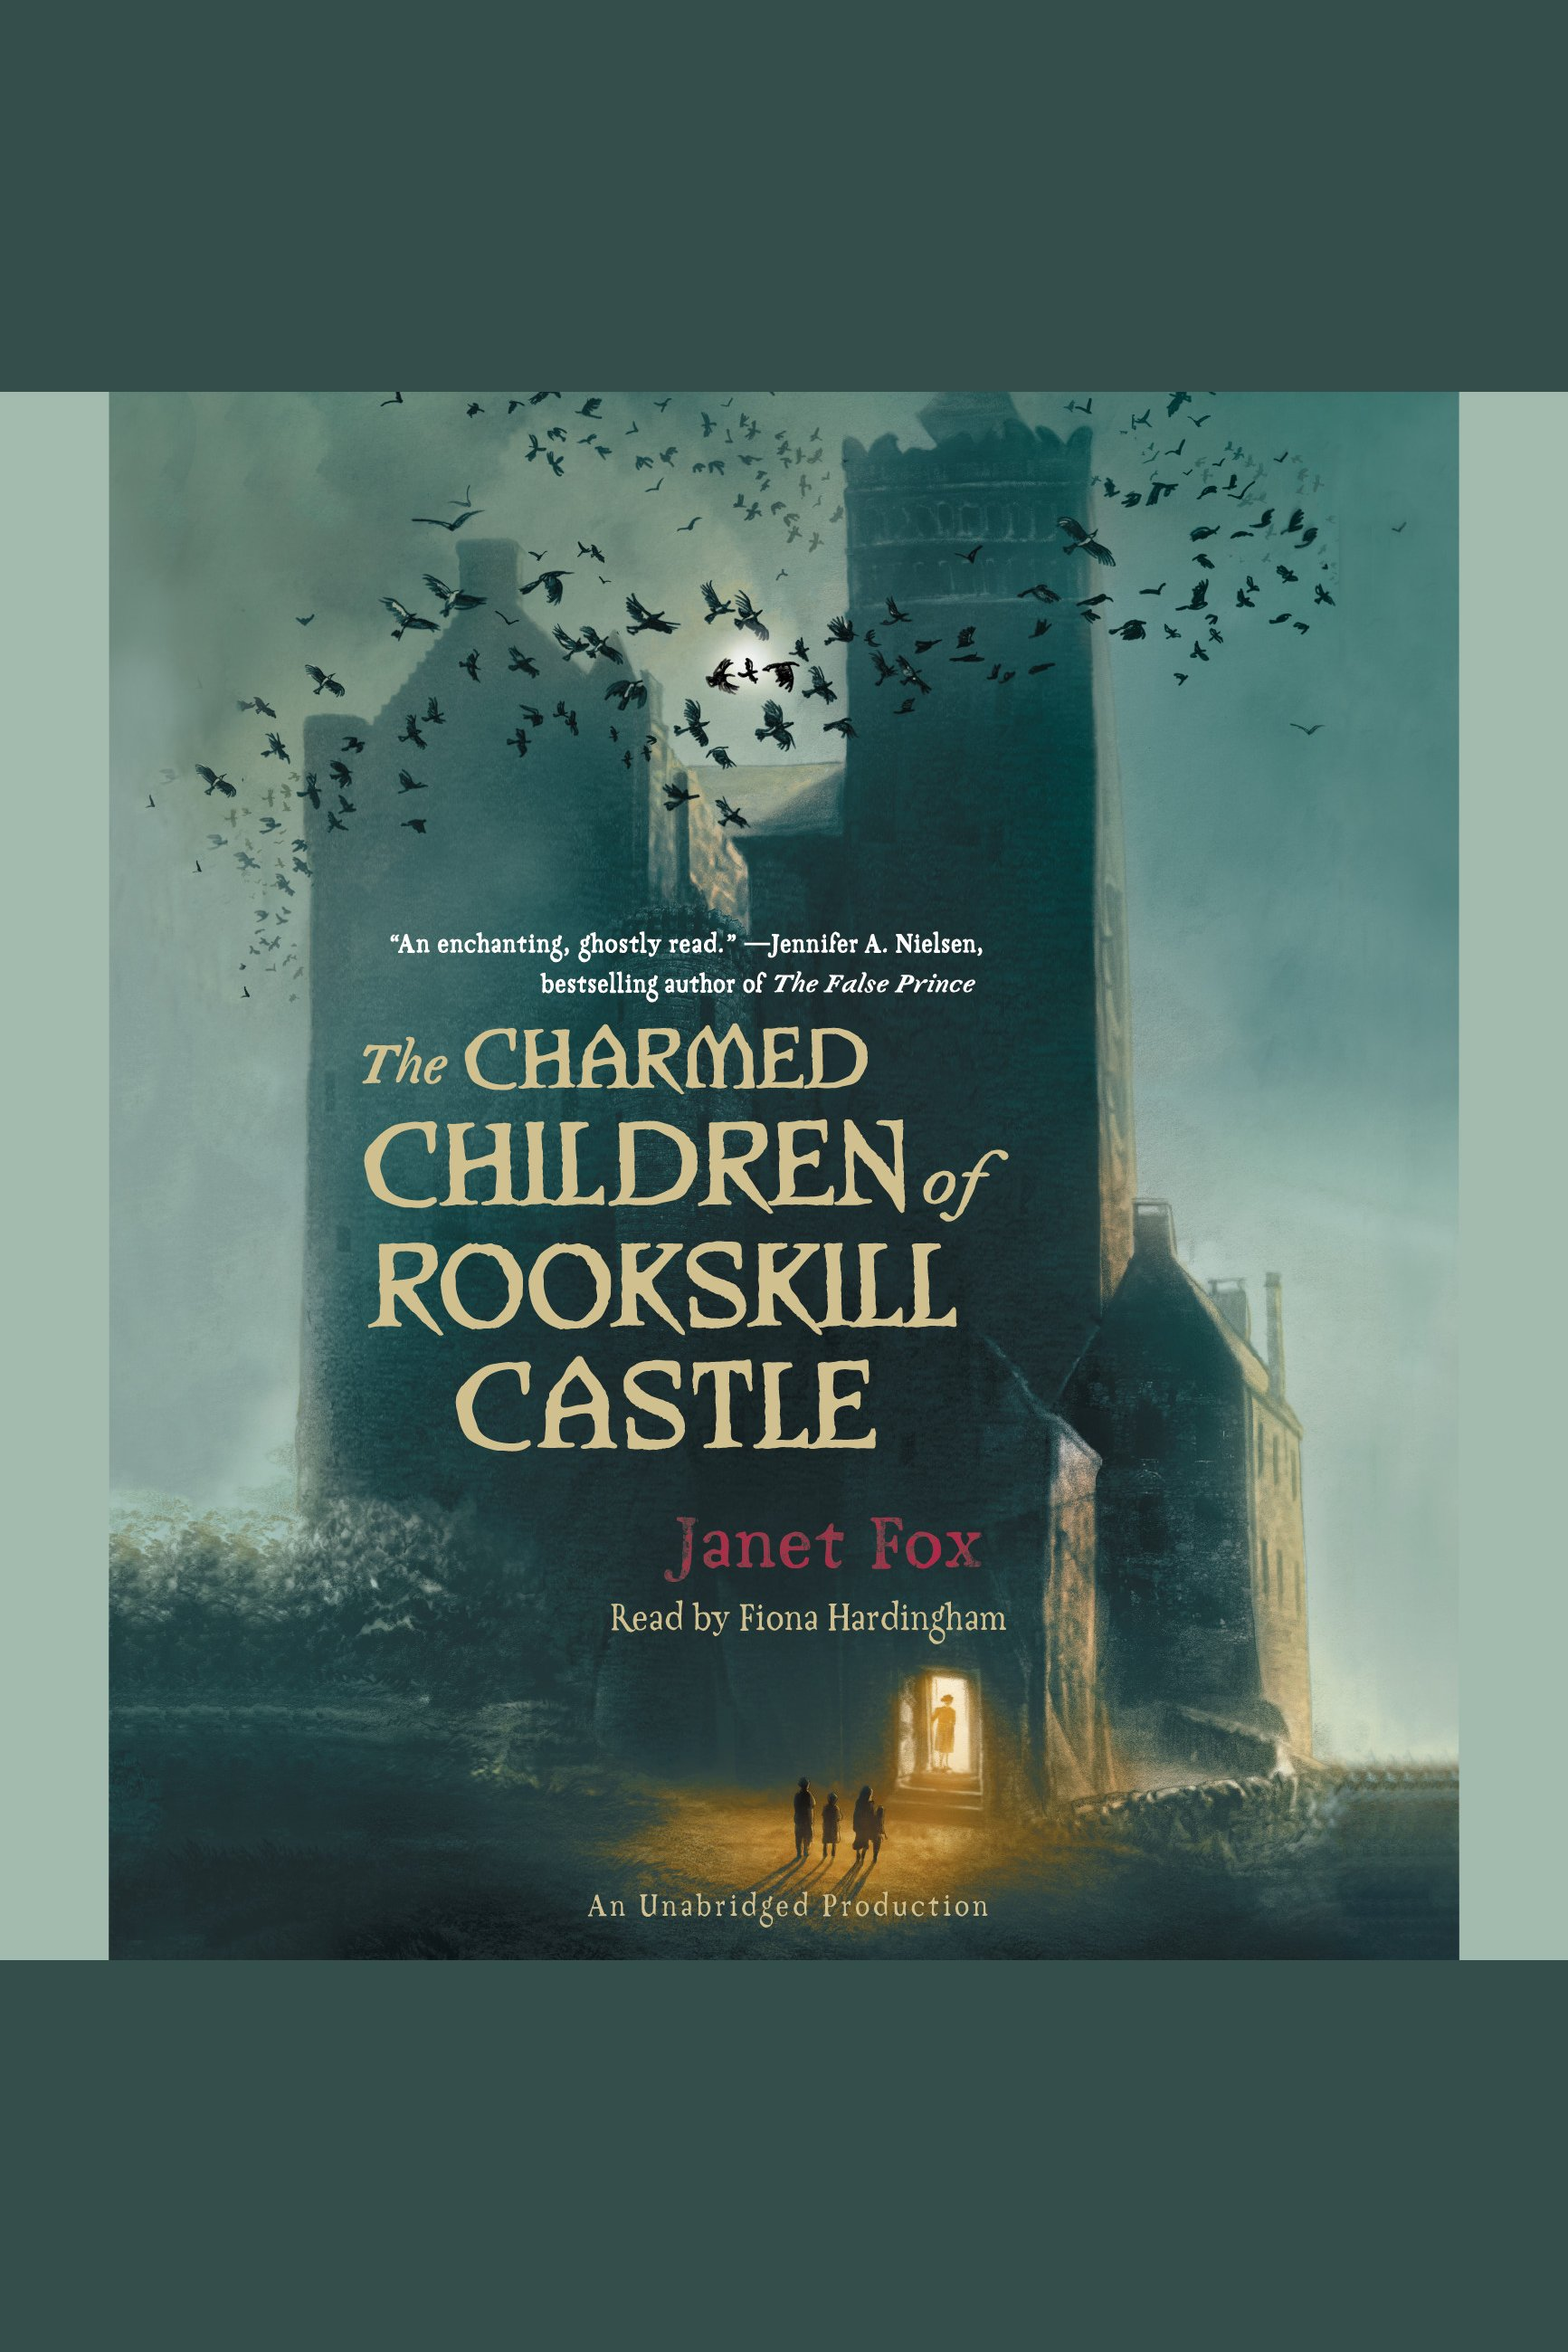 The charmed children of Rookskill Castle cover image